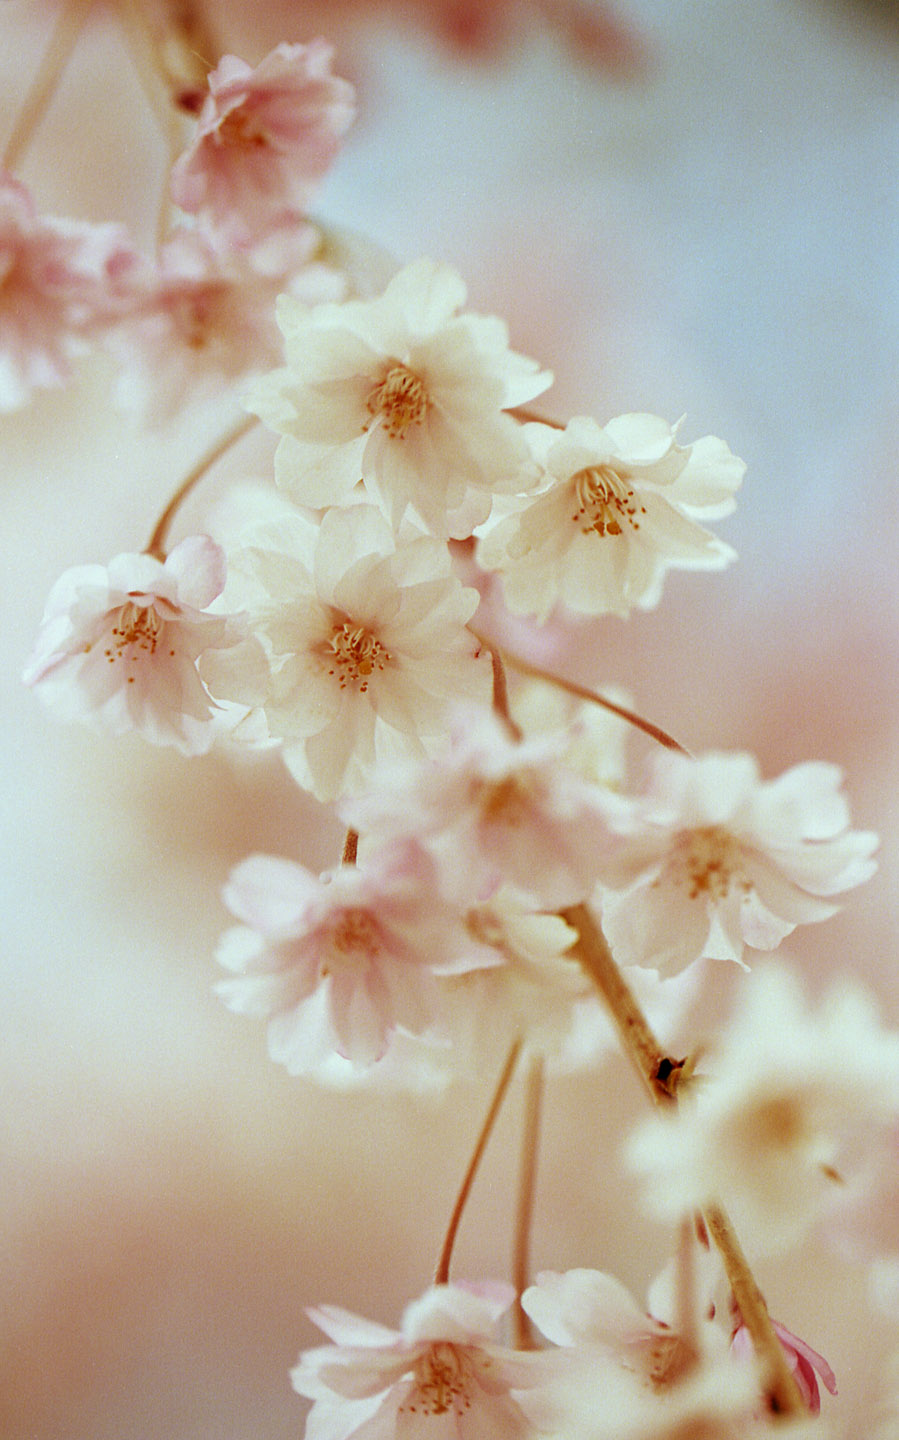 White and pink spring flowers photographed on kodak film